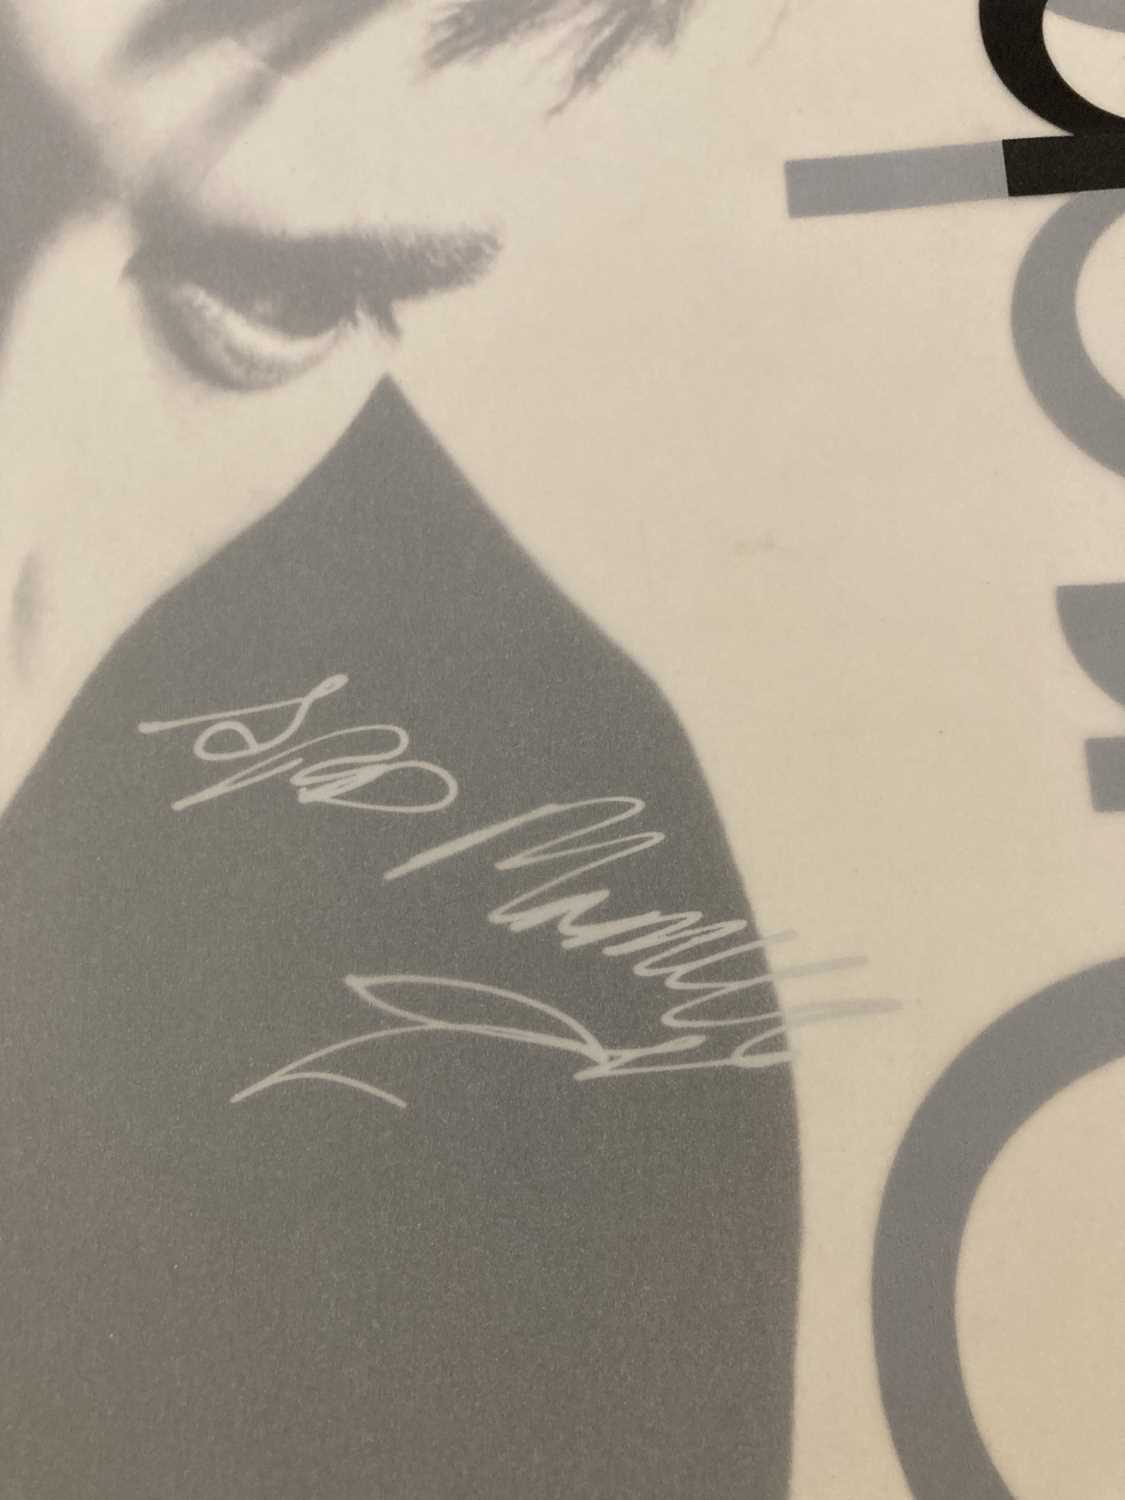 NEW ORDER SIGNED LP. - Image 2 of 8